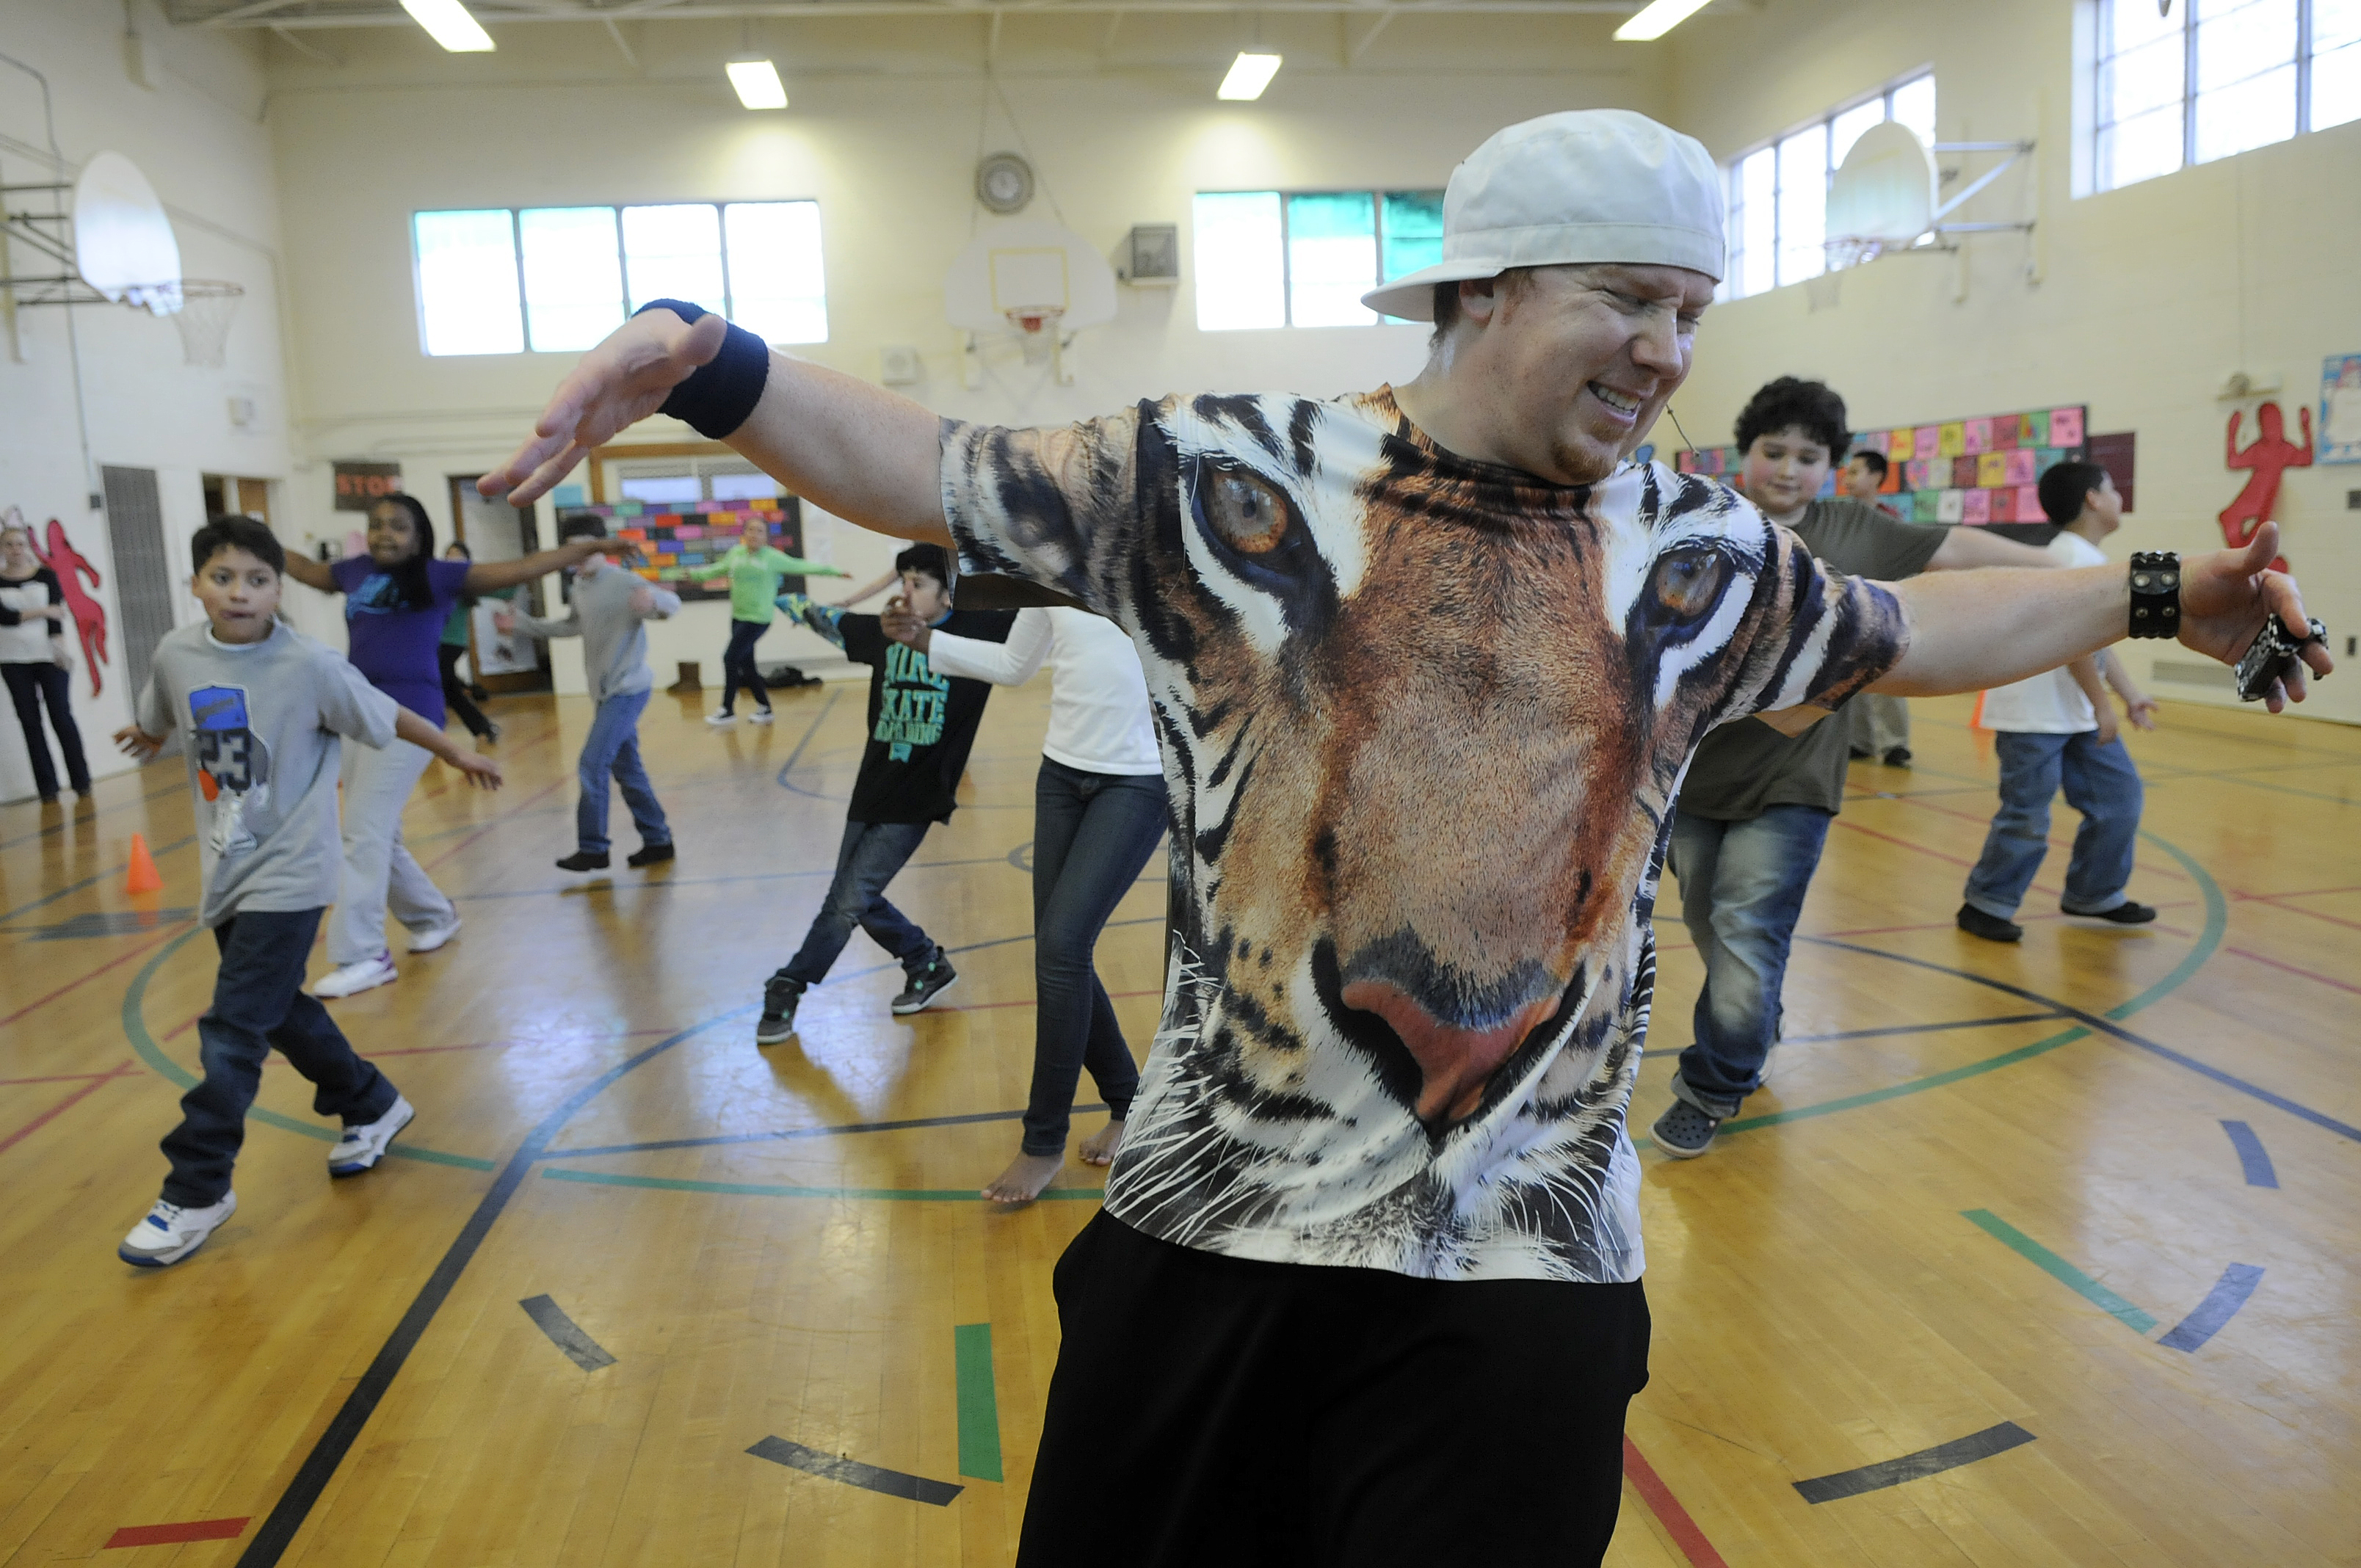 WEST HARTFORD 01/15/14 Austin Dailey, of Durham, CEO of Red Supreme Productions, teaches a hip-hop step called top rock to fifth-graders at Charter Oak International Academy Wednesday.  CLOE POISSON|cpoisson@courant.com